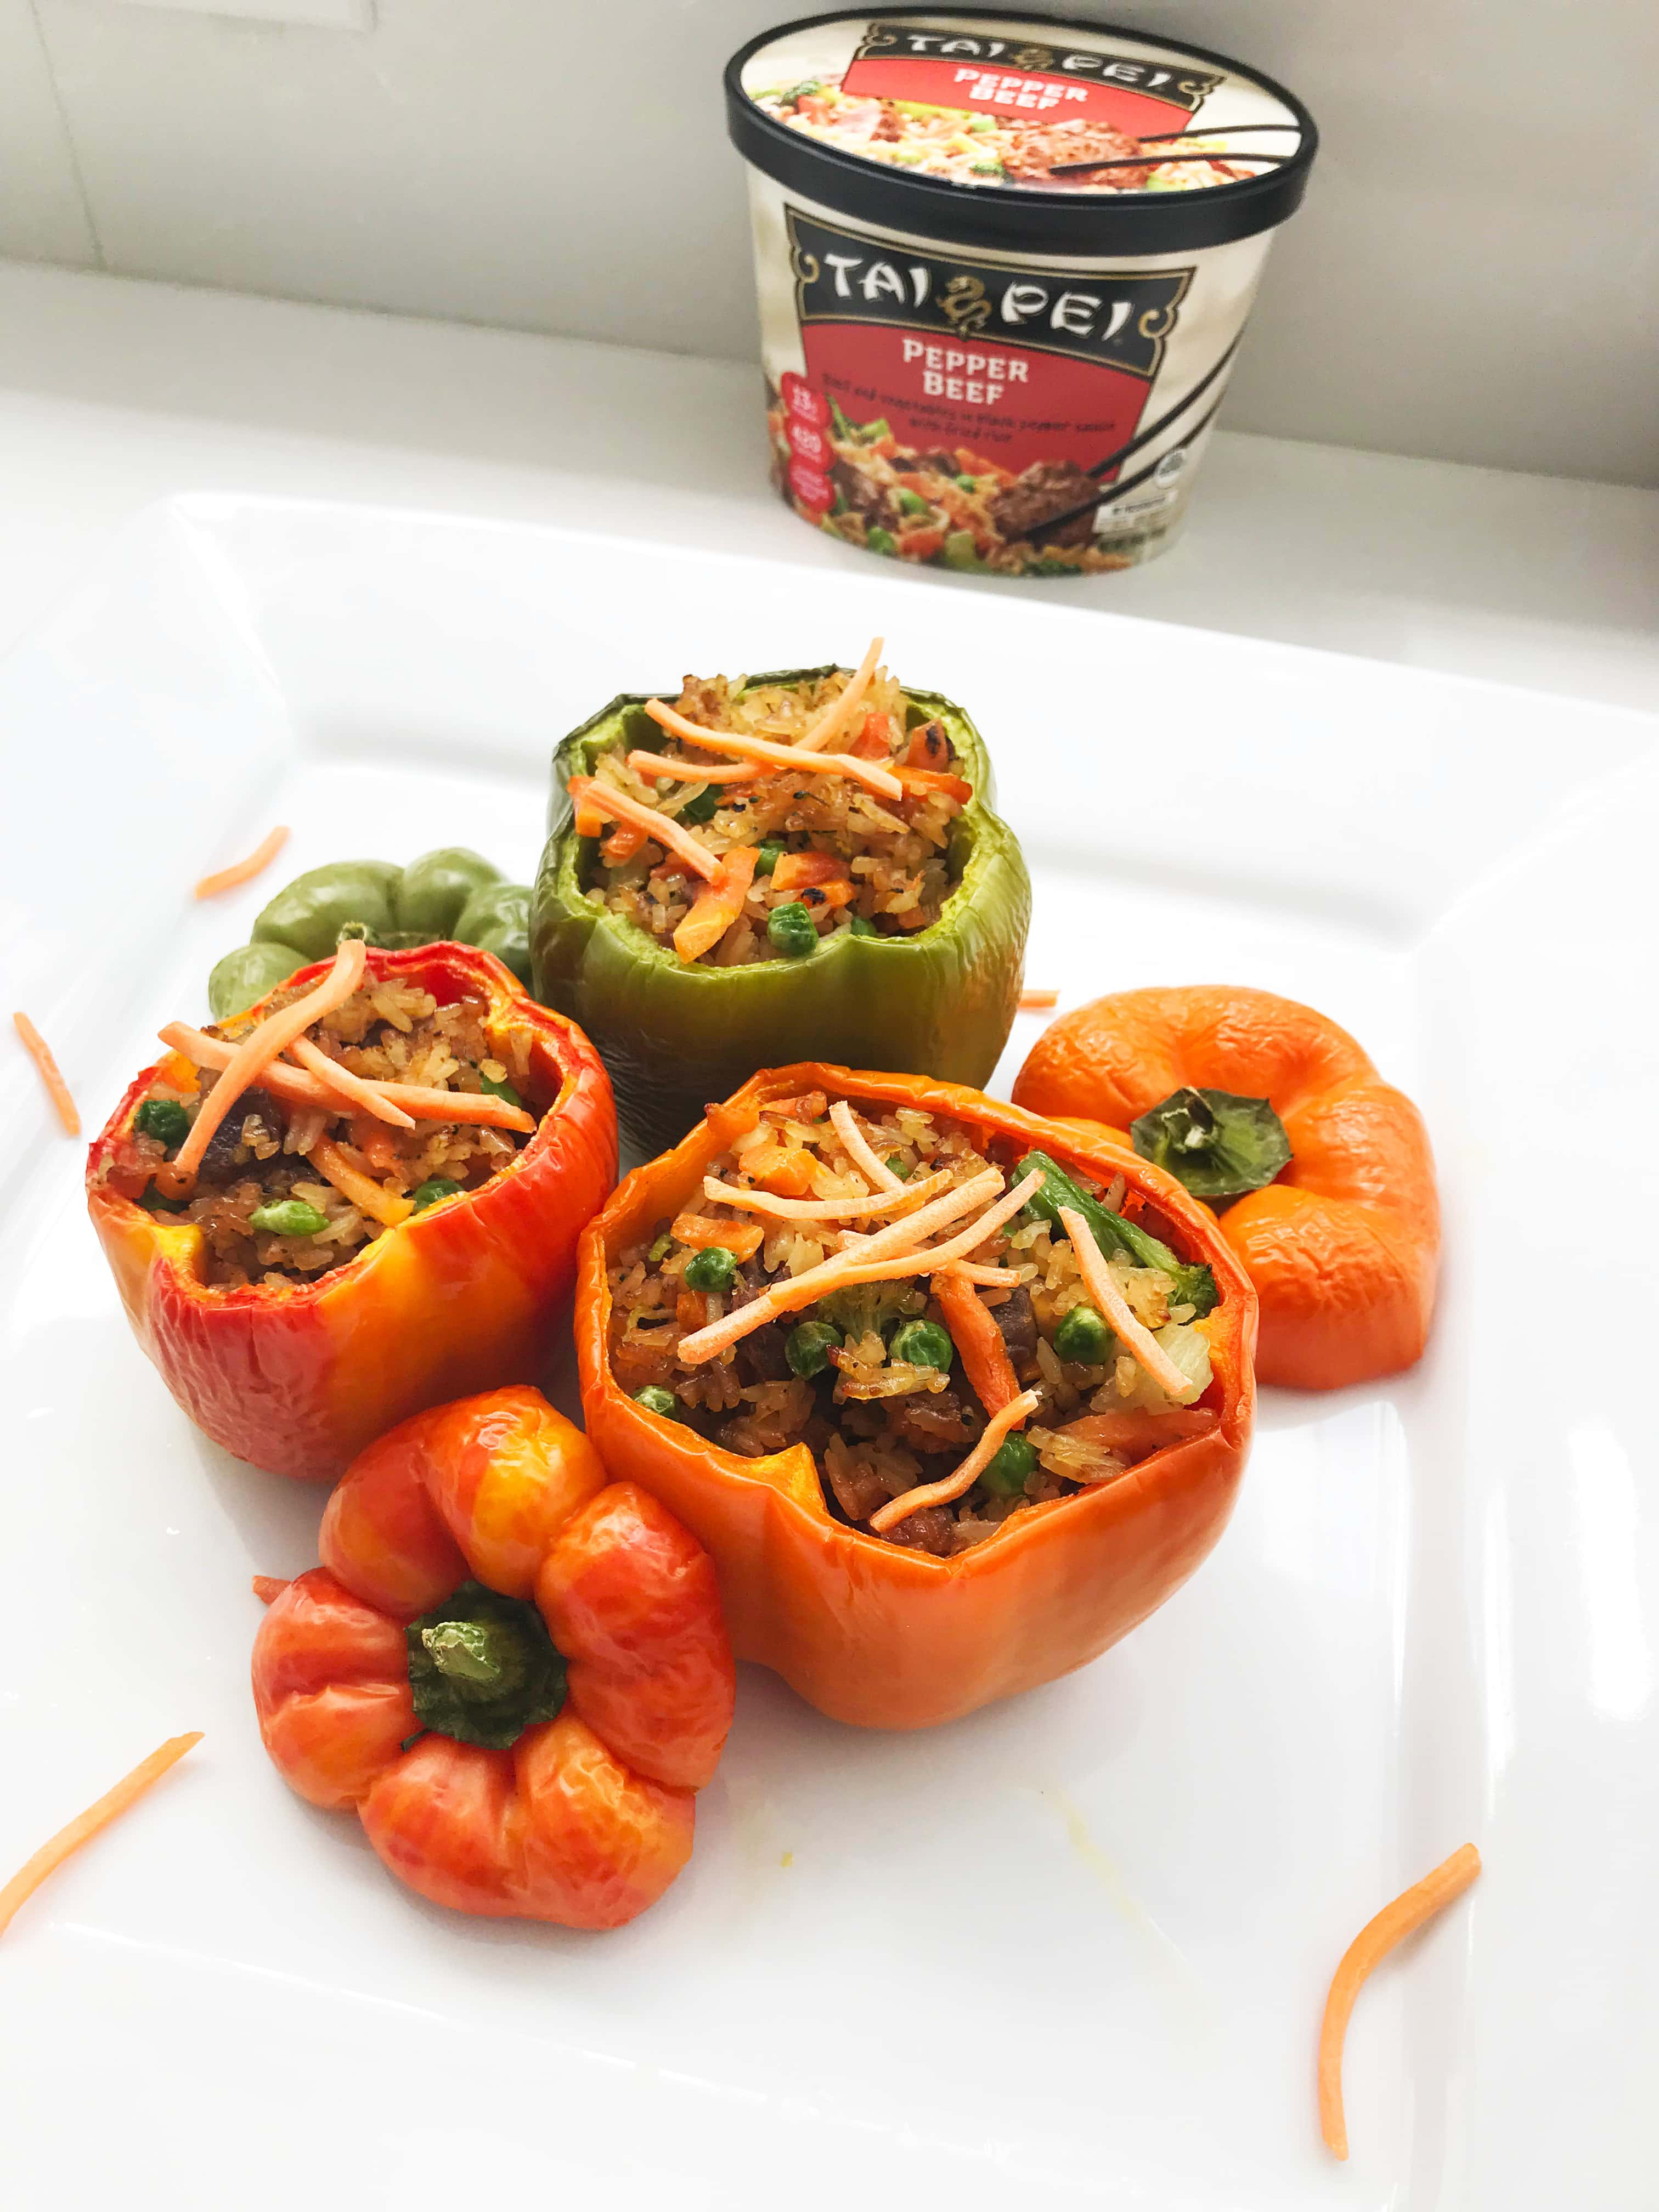 Easy Summer Meal Idea: Pepper Steak Stuffed Bell Peppers